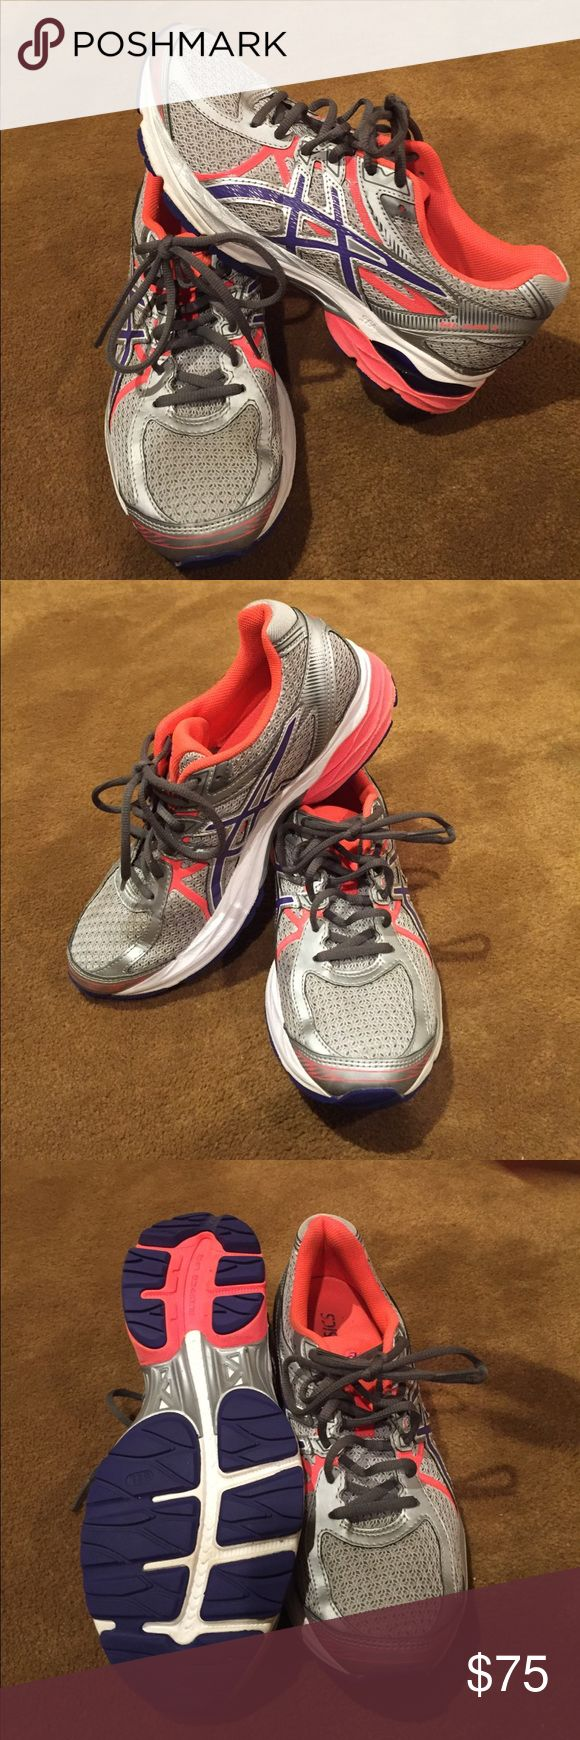 ASICS Gel Flux 3 woman's size 8.5 Up for sale is a pair of ASICS Gel Flux 3. They are size 8.5. They are in excellent condition and have only been worn indoors for a dance fitness class. Asics Shoes Sneakers